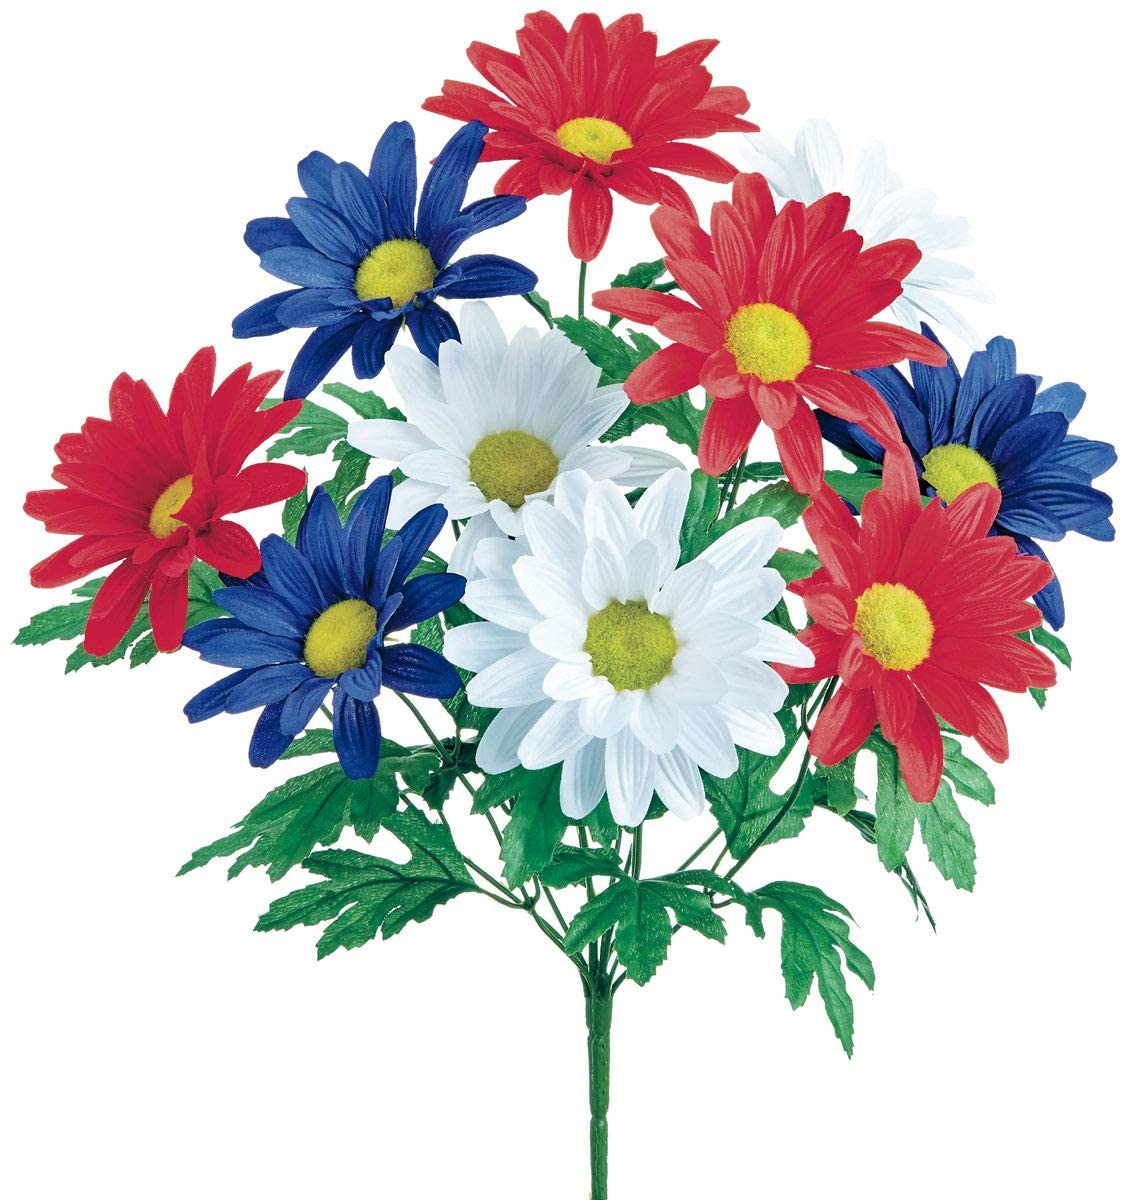 Set of 12 Artificial Red, White and Blue Shasta Daisy Bushes 18.5 Inches High